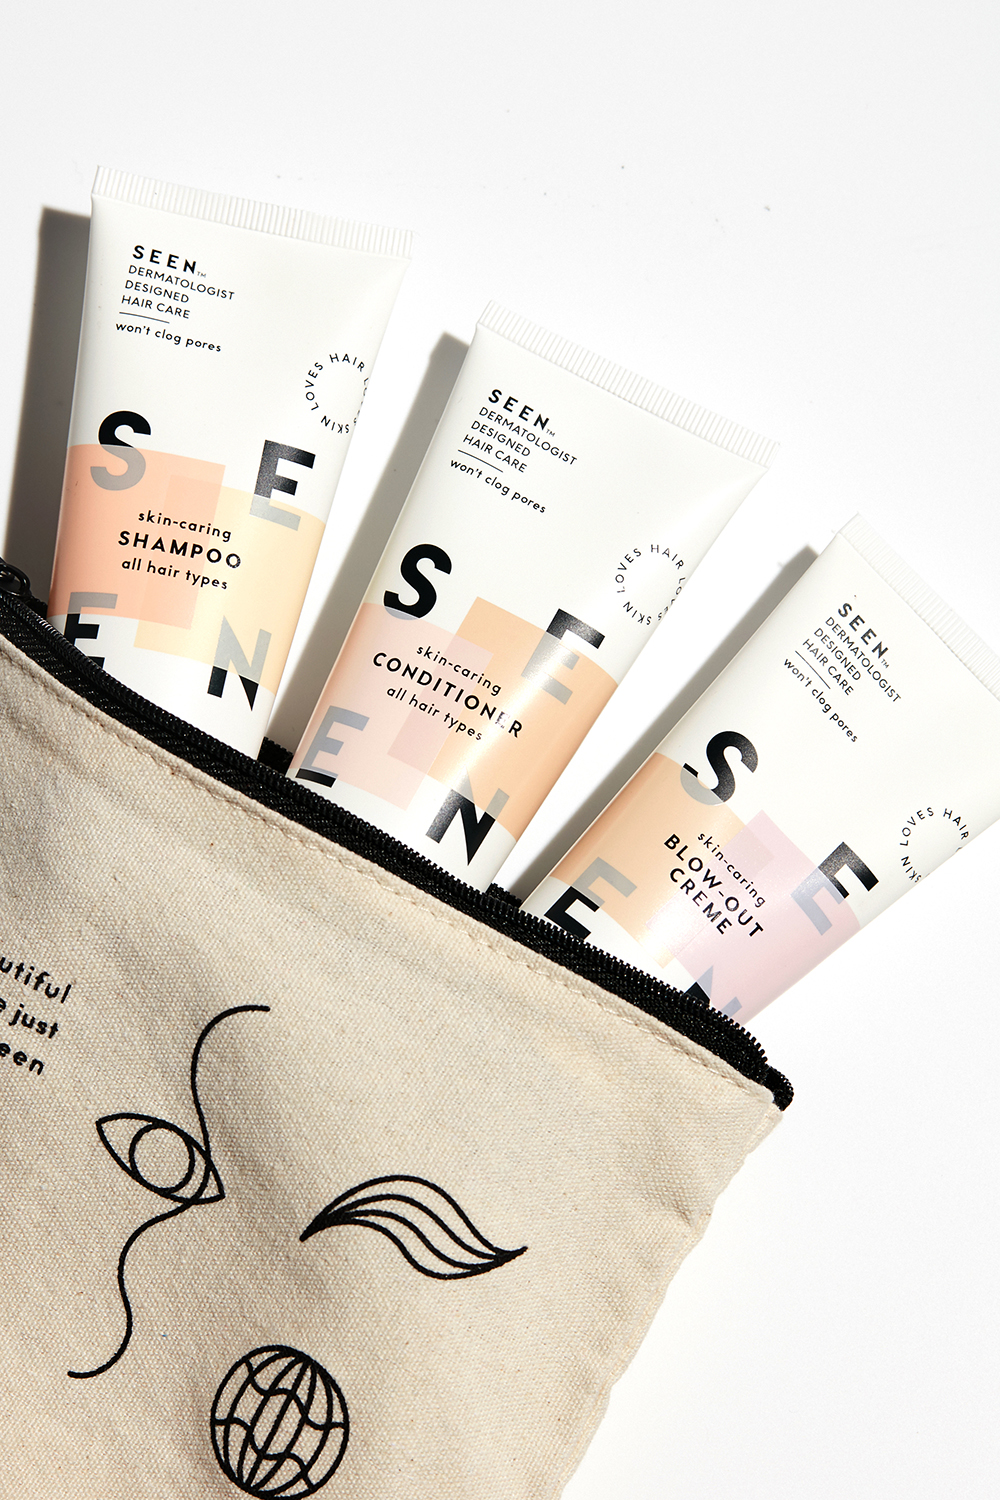 The SEEN Haircare Travel Kit ($29) includes the brand's shampoo, conditioner, and blow-out cream in a stylish pouch.